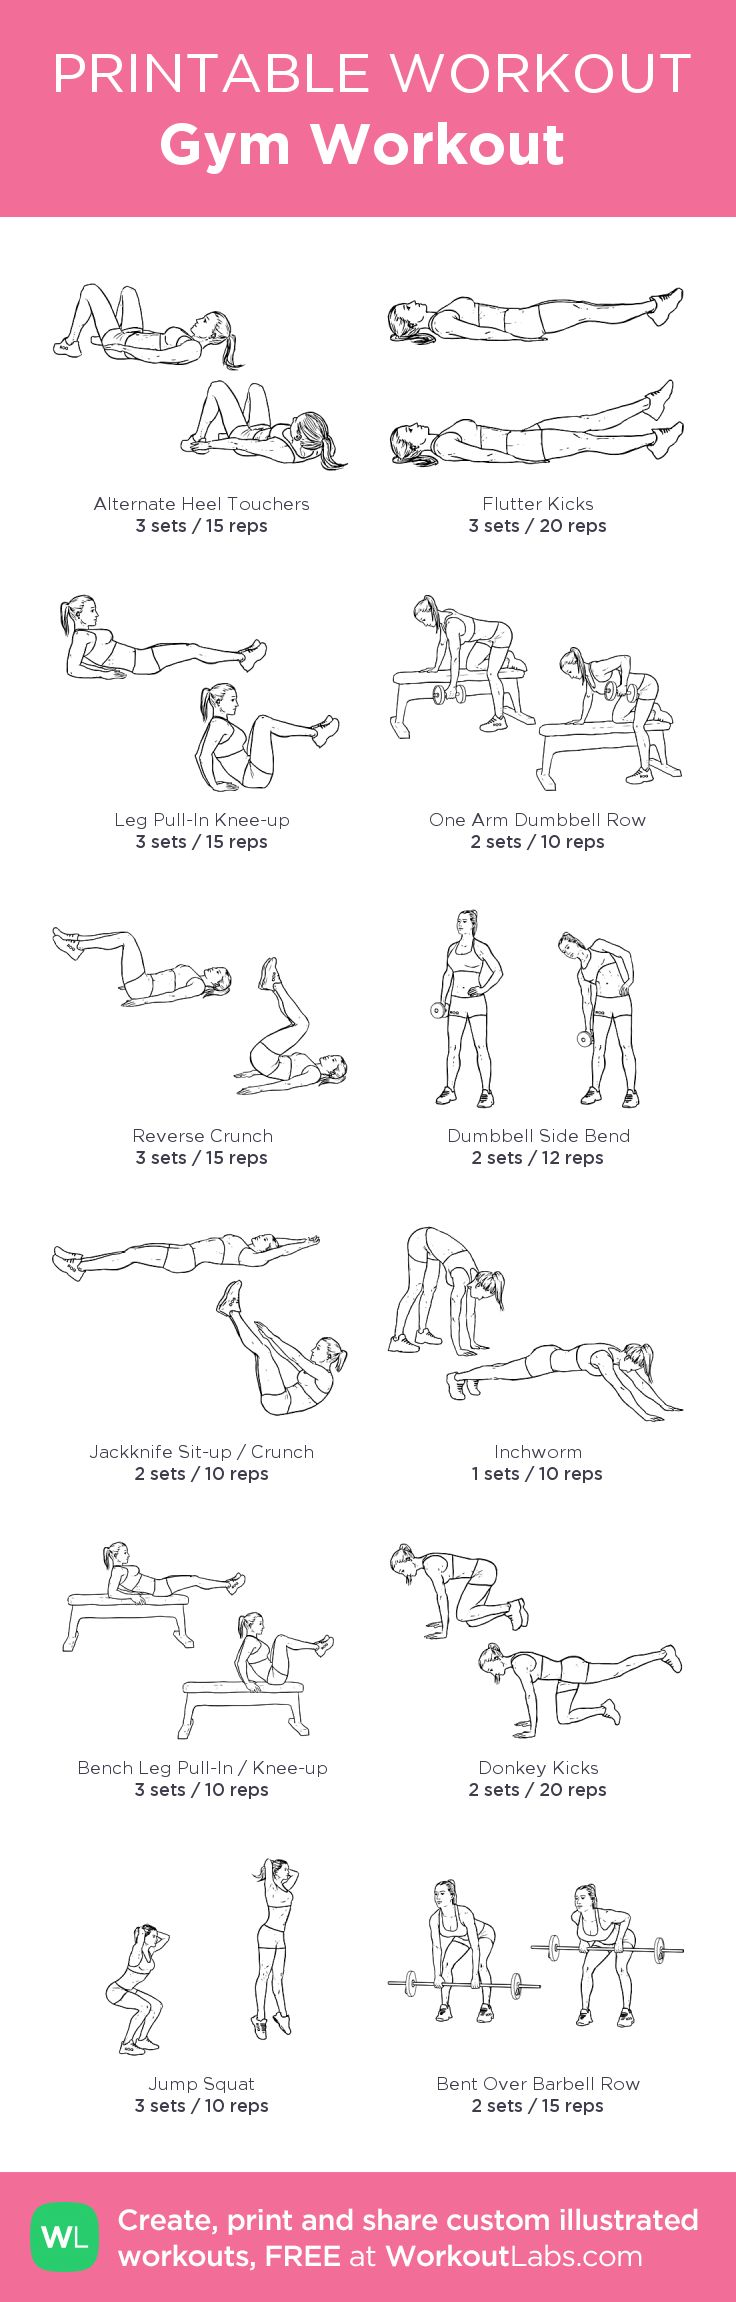 Gym Workout : my custom printable workout by @WorkoutLabs #workoutlabs…